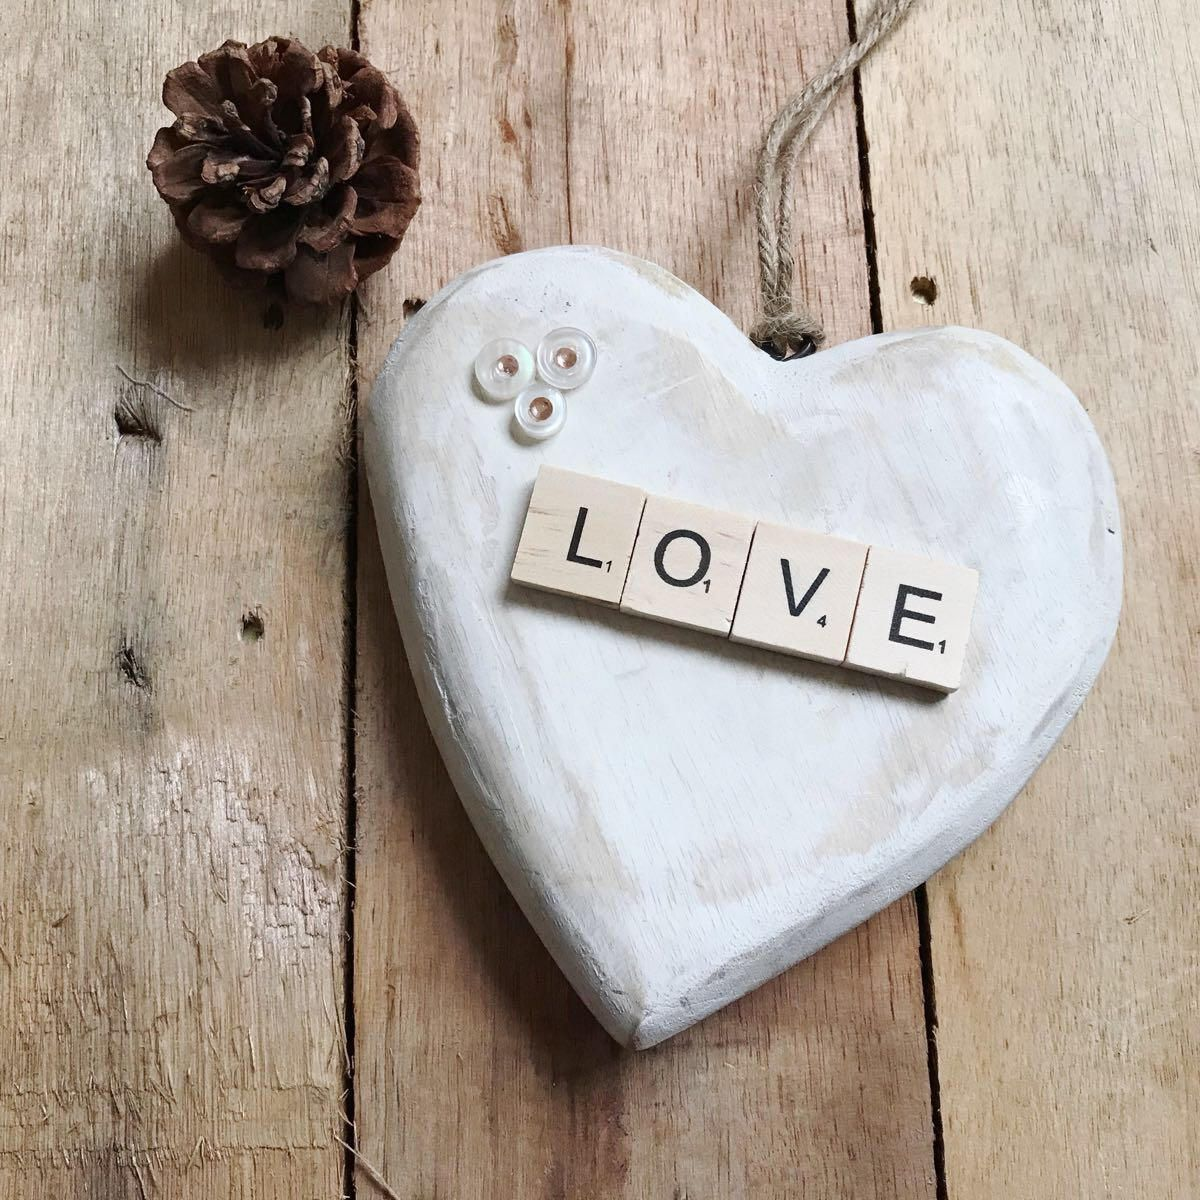 Hanging Heart Heart Sign Hanging Heart For Wall Hanging Heart Decoration Hanging Door Decoration Heart Plaque Wood Heart For Wall Christmas Signs Wood Heart Decorations Wooden Hearts